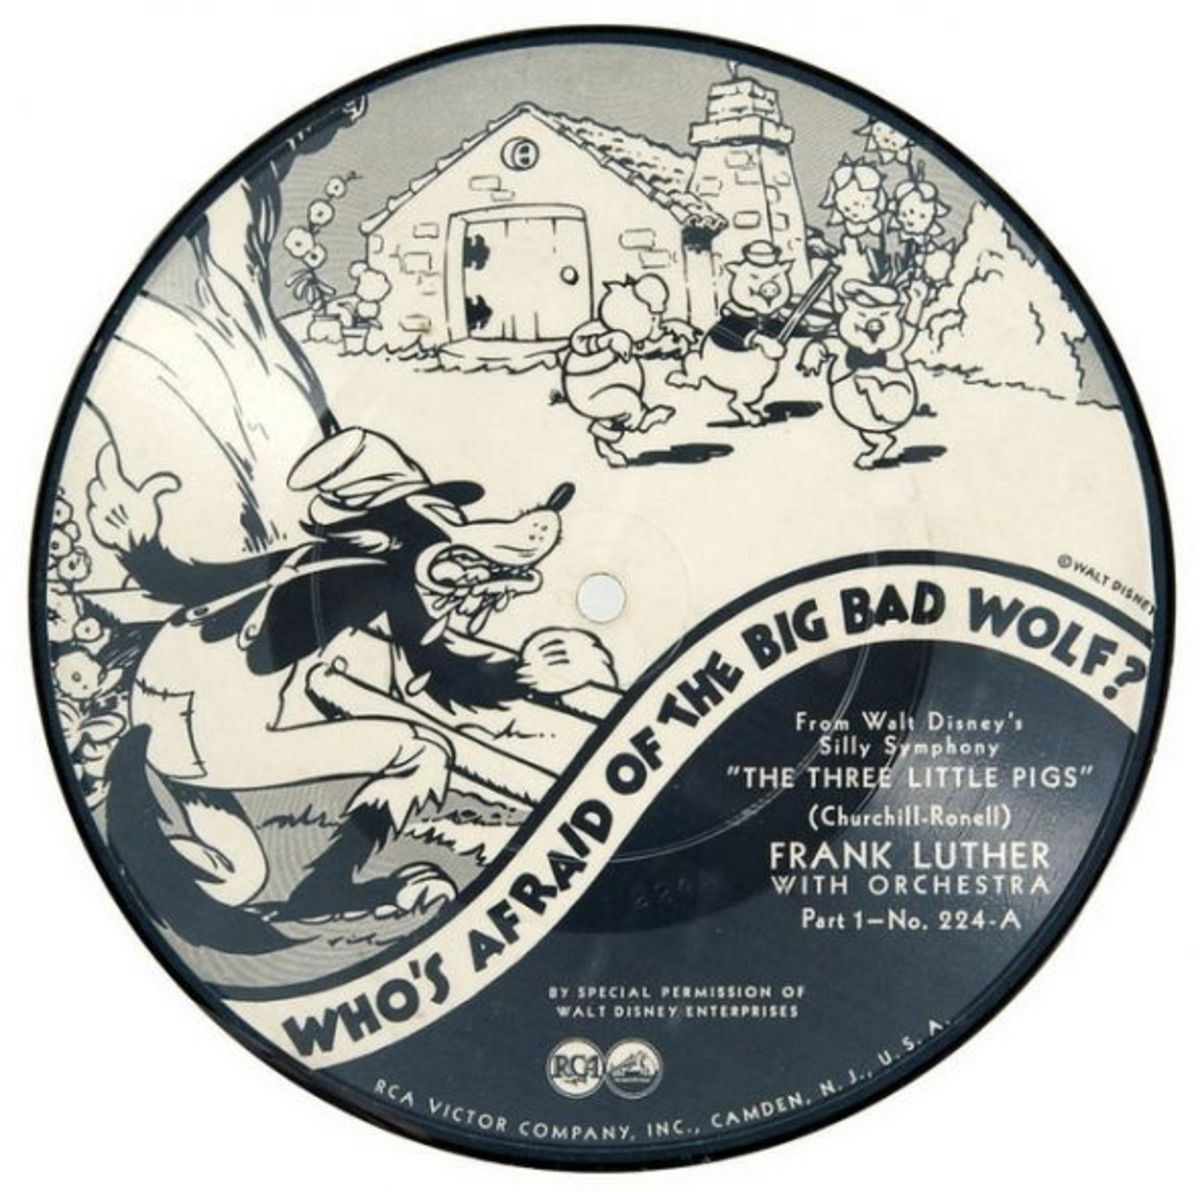 "Frank Luther and His Orchestra Walt Disney Silly Symphony ""The Three Little Pigs"" b/w ""Who's Afraid of the Big Bad Wolf?"" RCA Victor 224-A Part 1 7""  78 rpm Shellac Record"